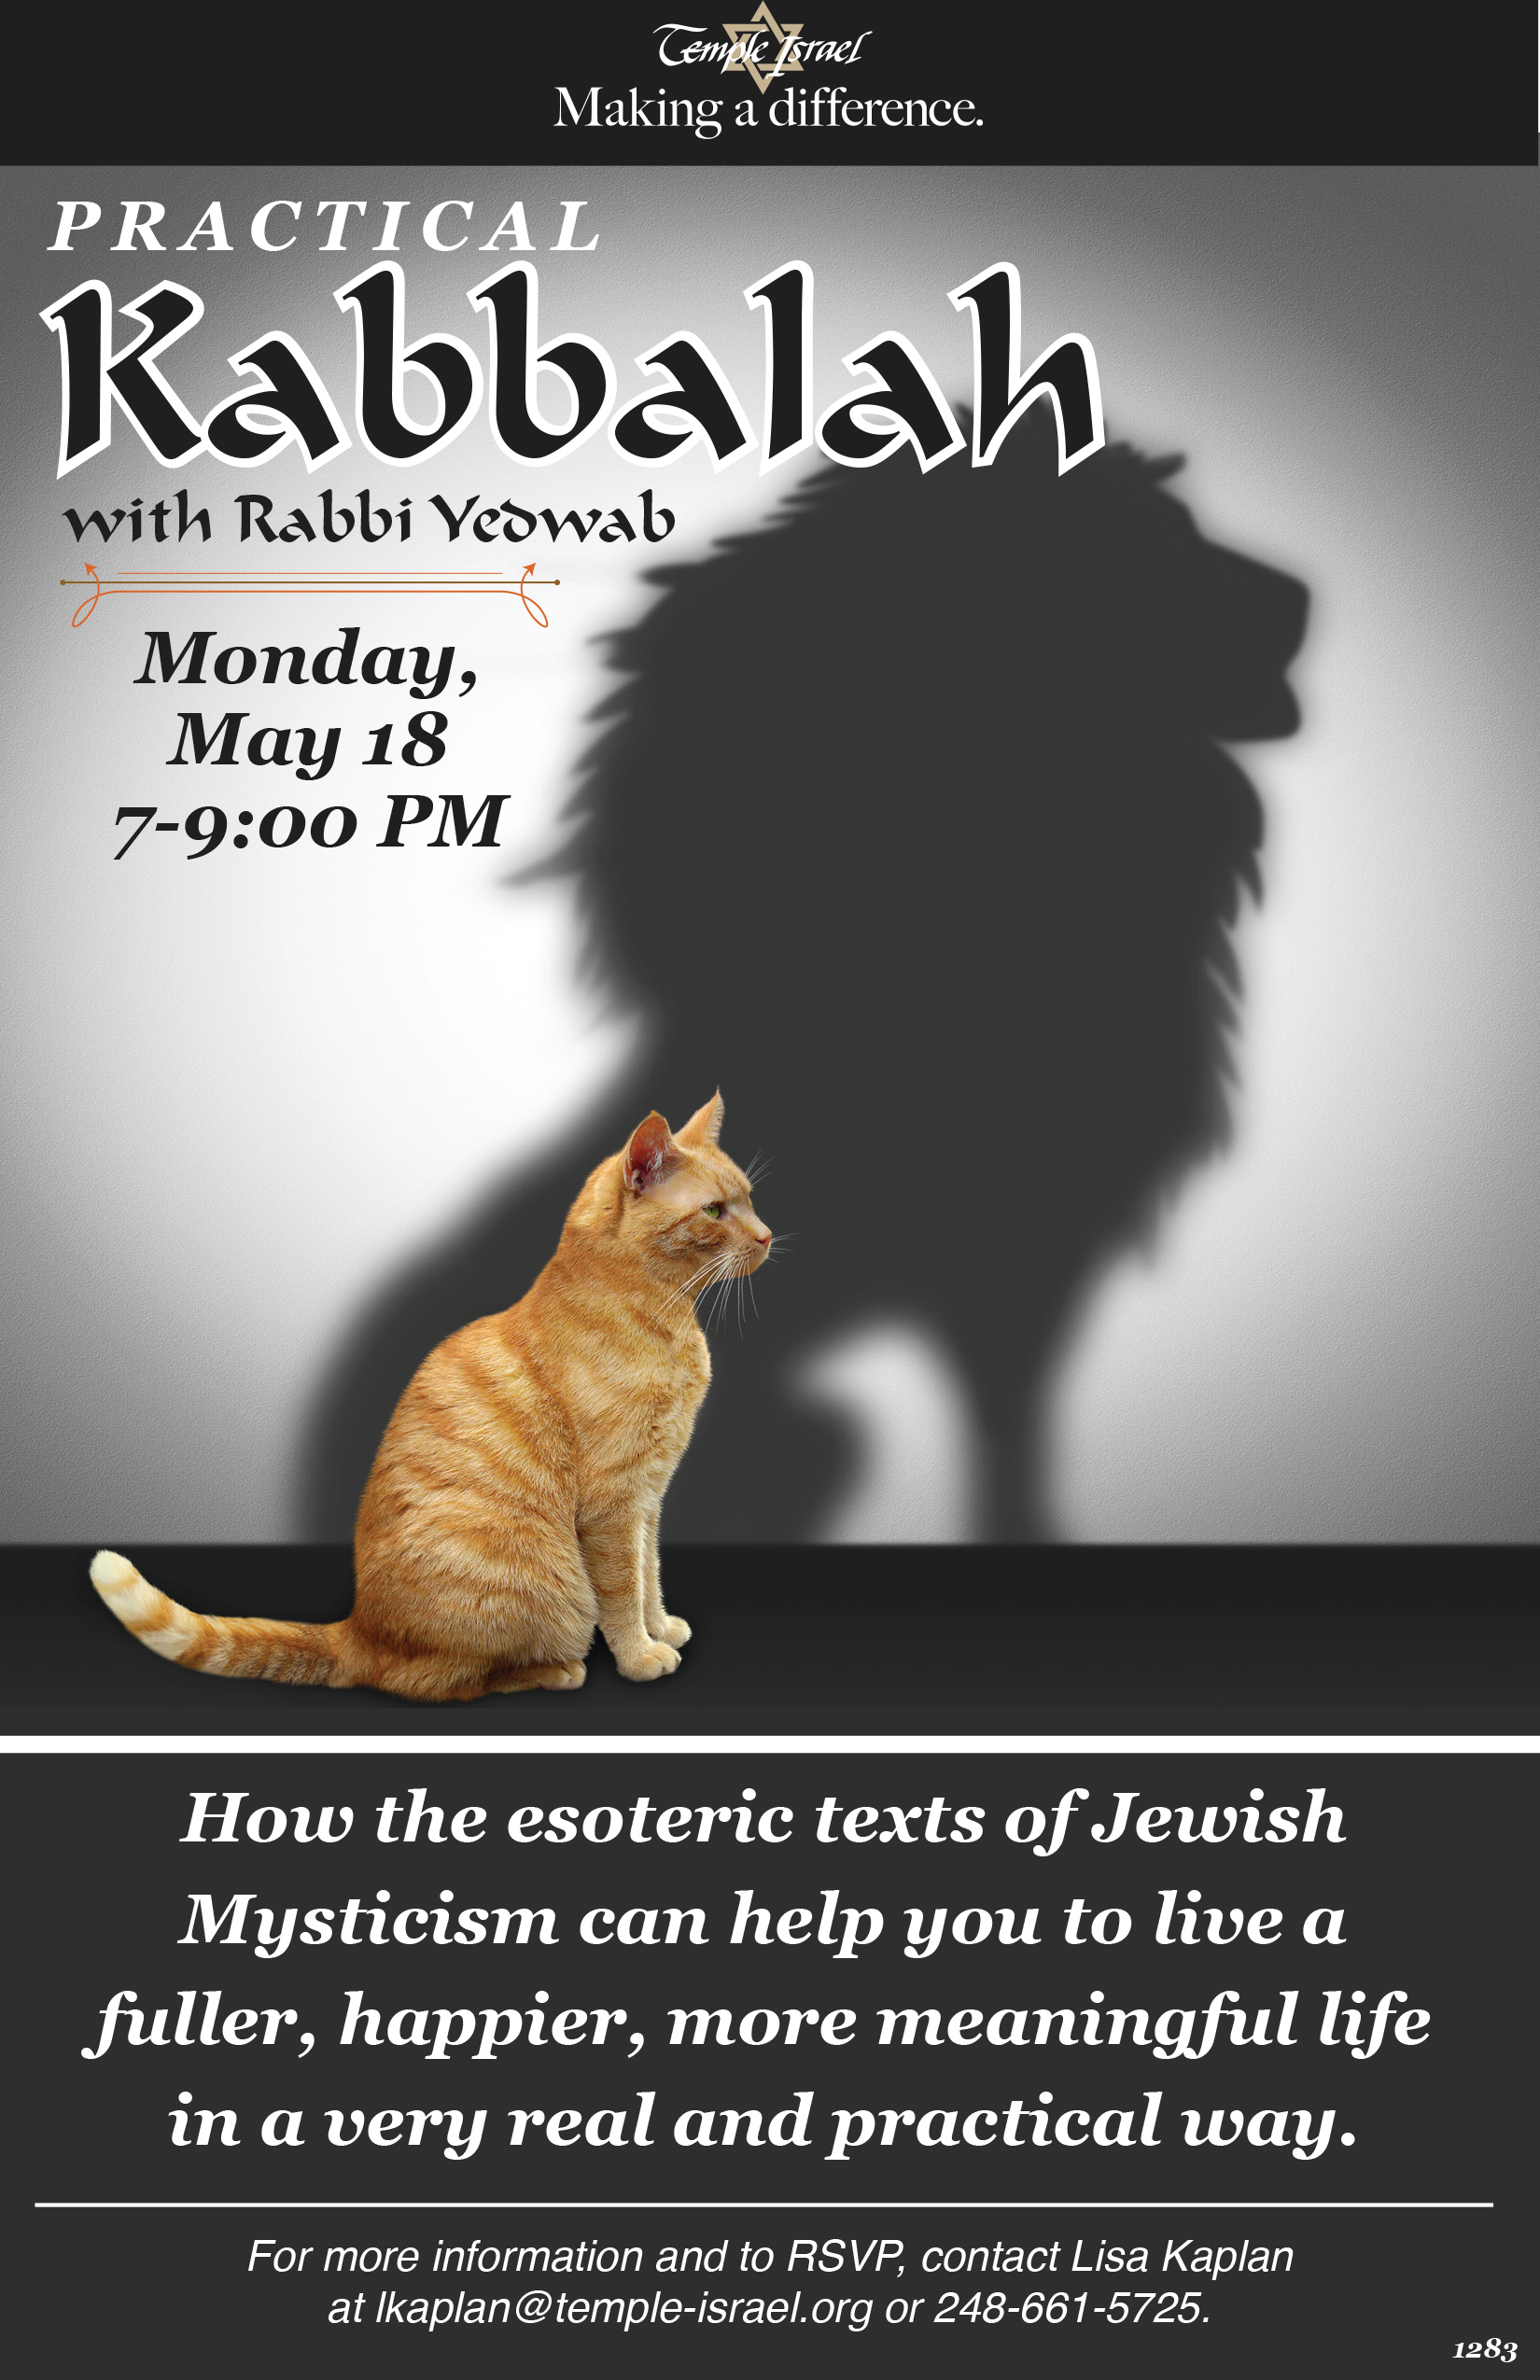 1283 - Practical Kabbalah with Rabbi Yebwab